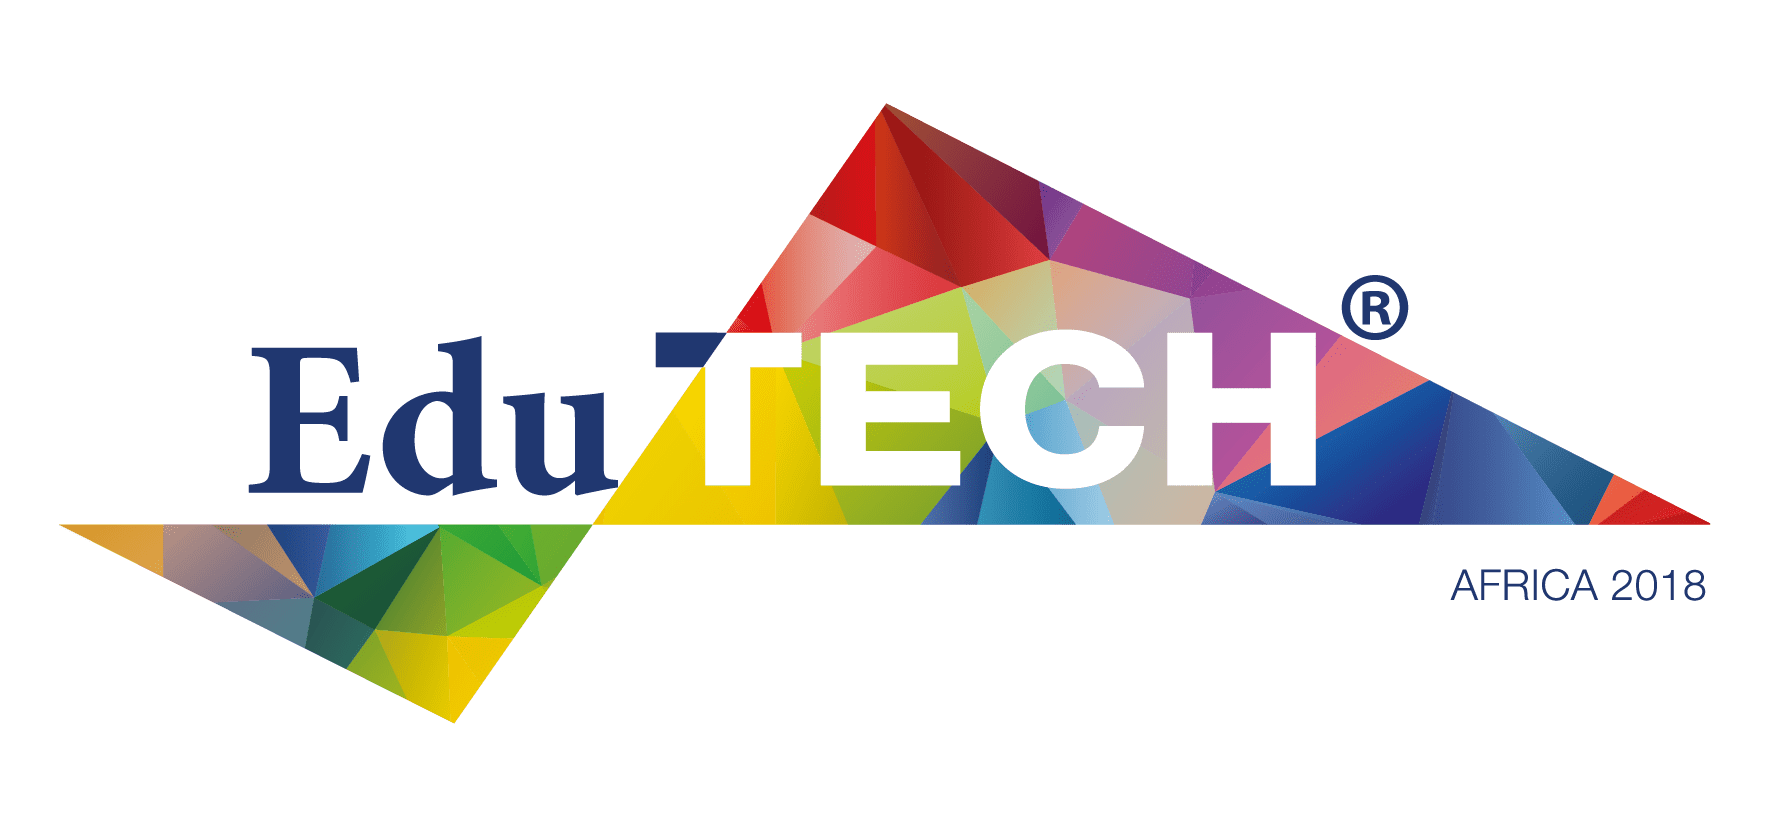 EduTECH Africa Conference 2018